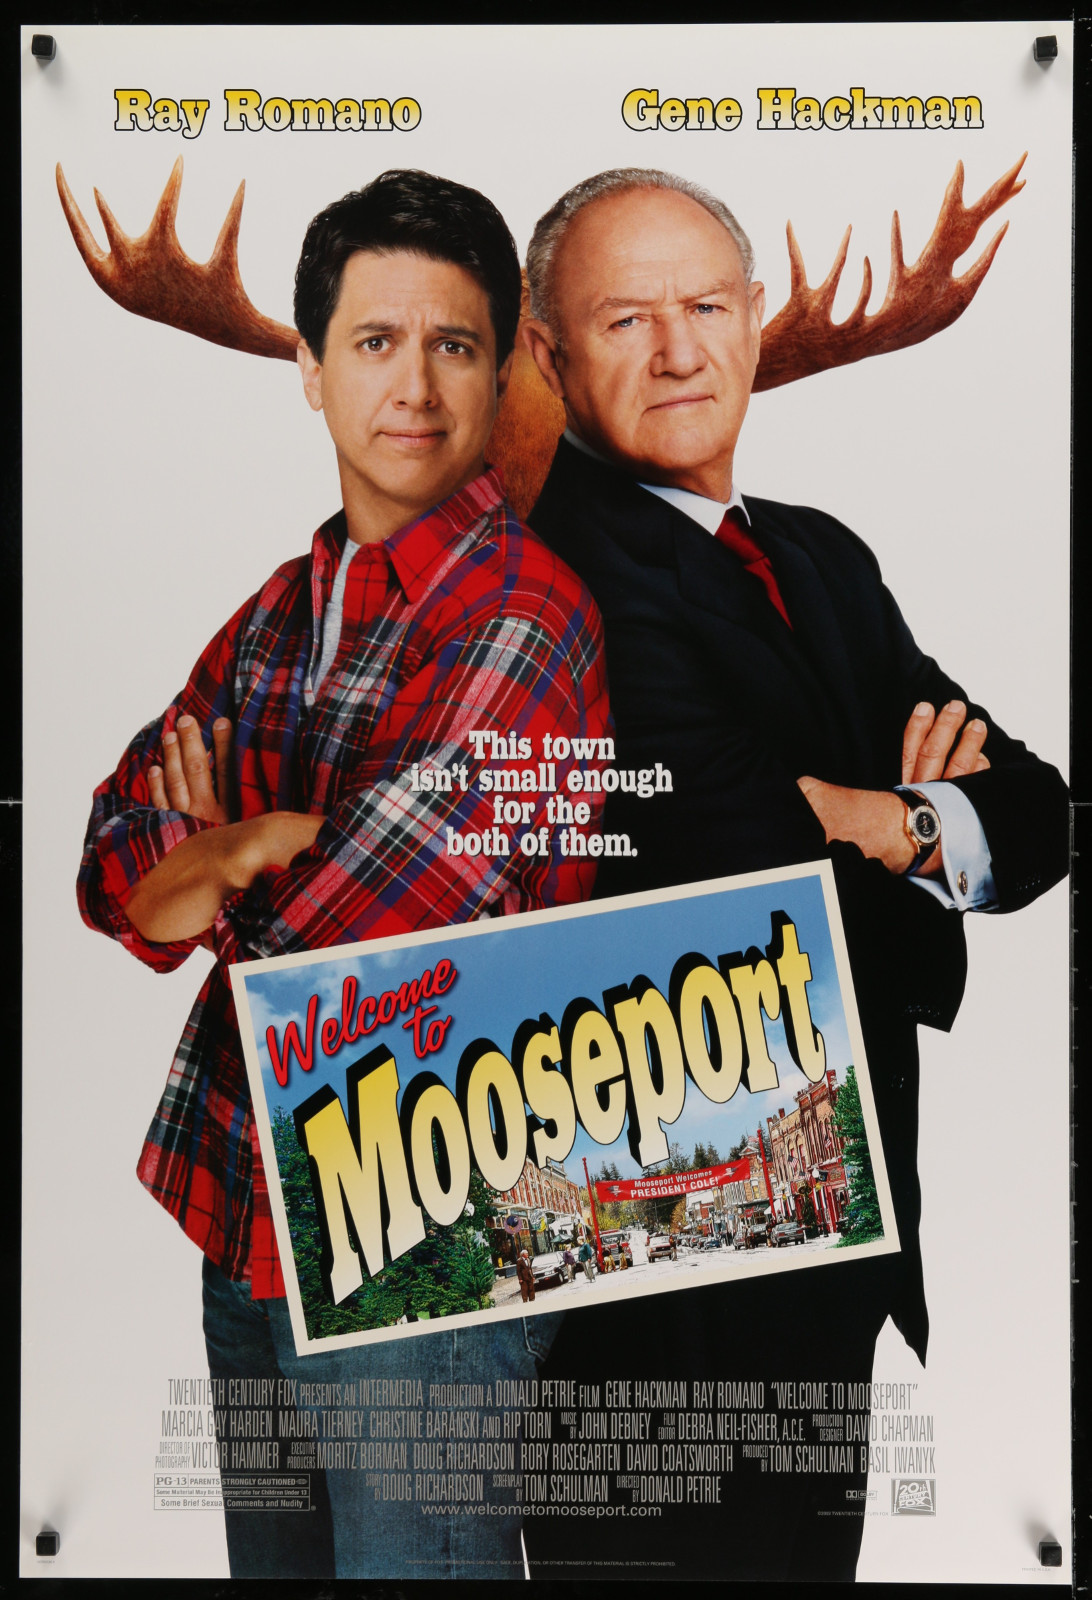 Welcome To Mooseport 2A391 A Part Of A Lot 24 Unfolded Double-Sided 27X40 One-Sheets '90S-00S Great Movie Images!